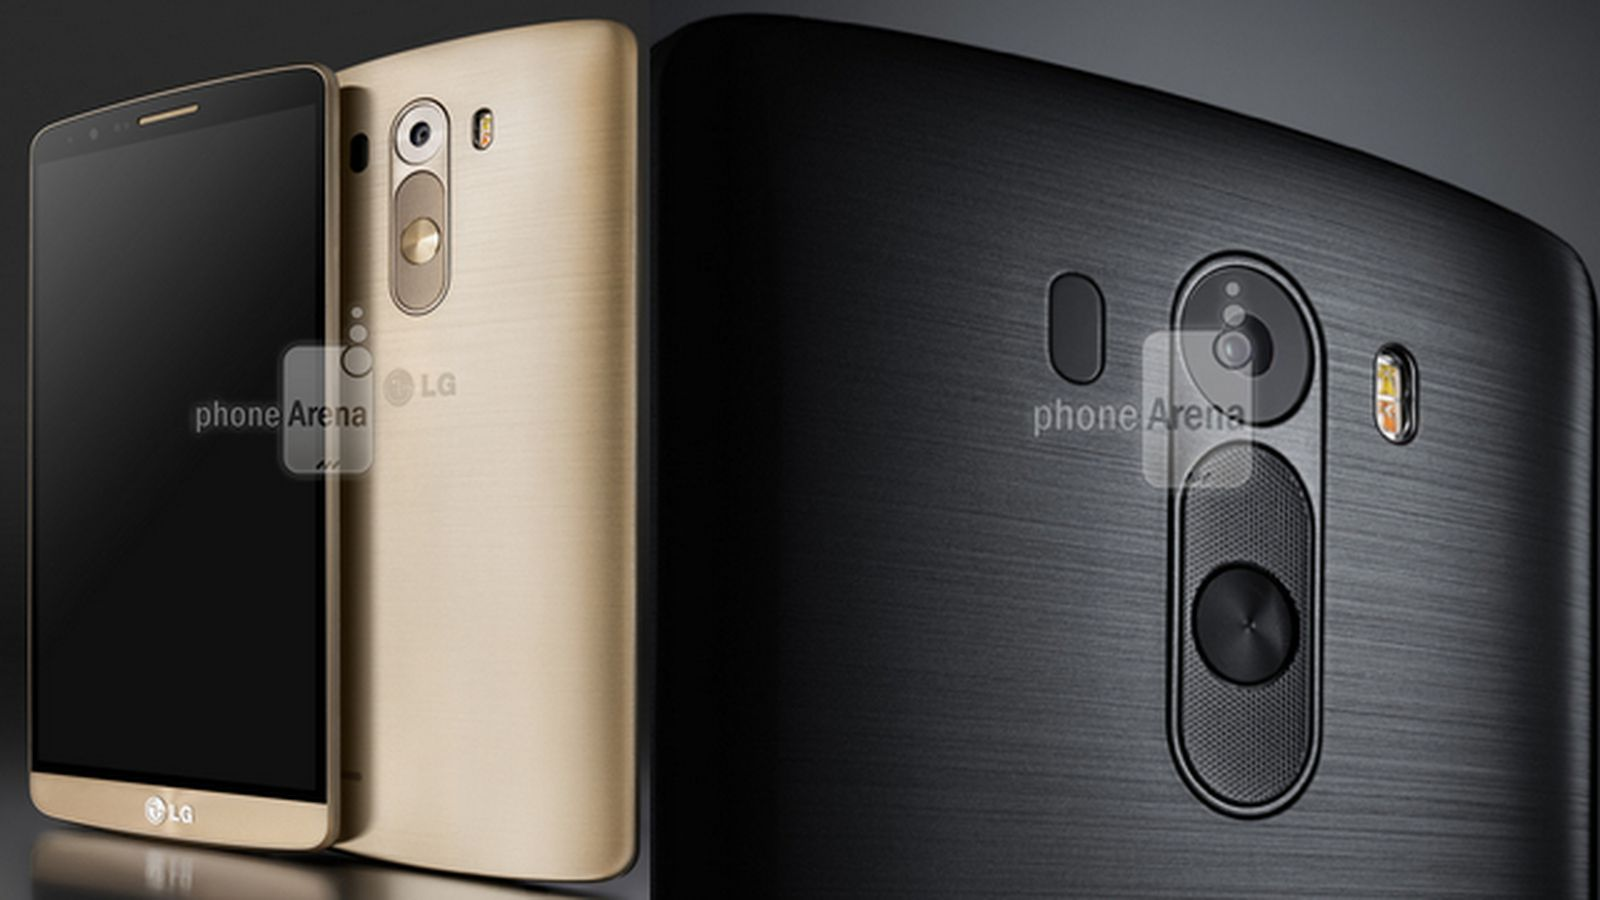 The LG G3 will be the first smartphone with laser ...